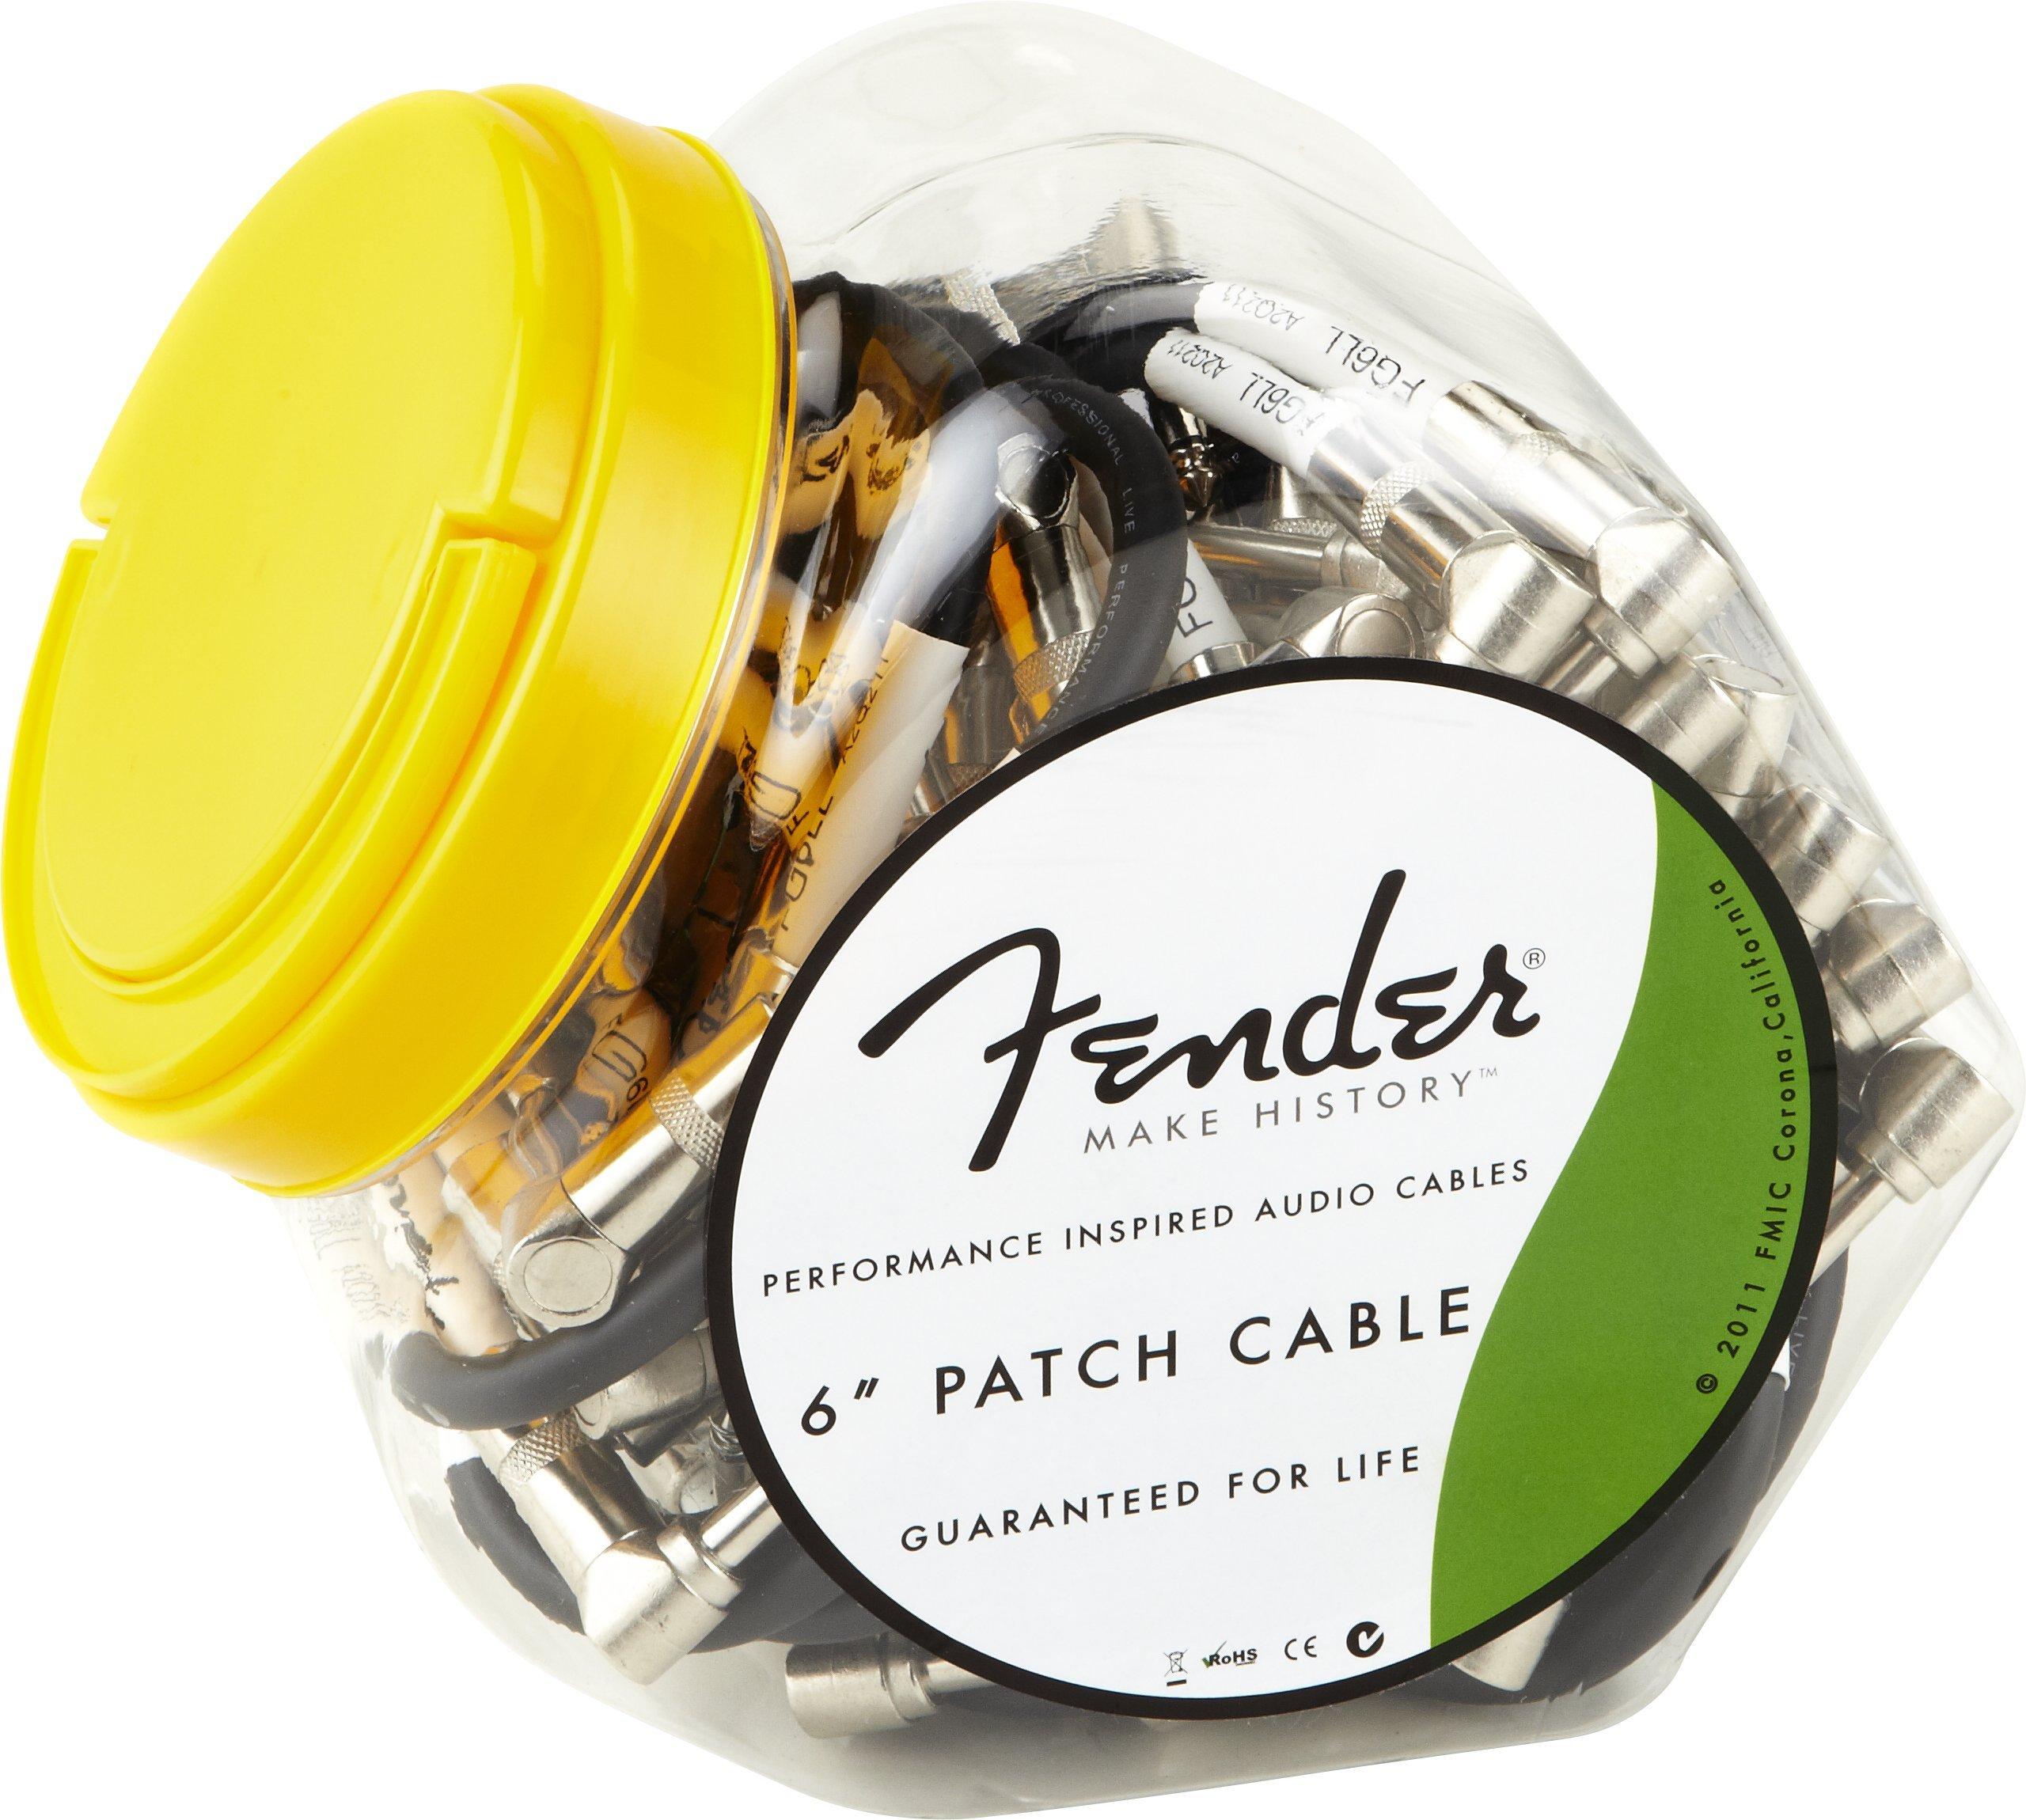 "Fender Performance Series 6"" Patch Cables – Bowl of 40 for guitar pedals, and pedals"